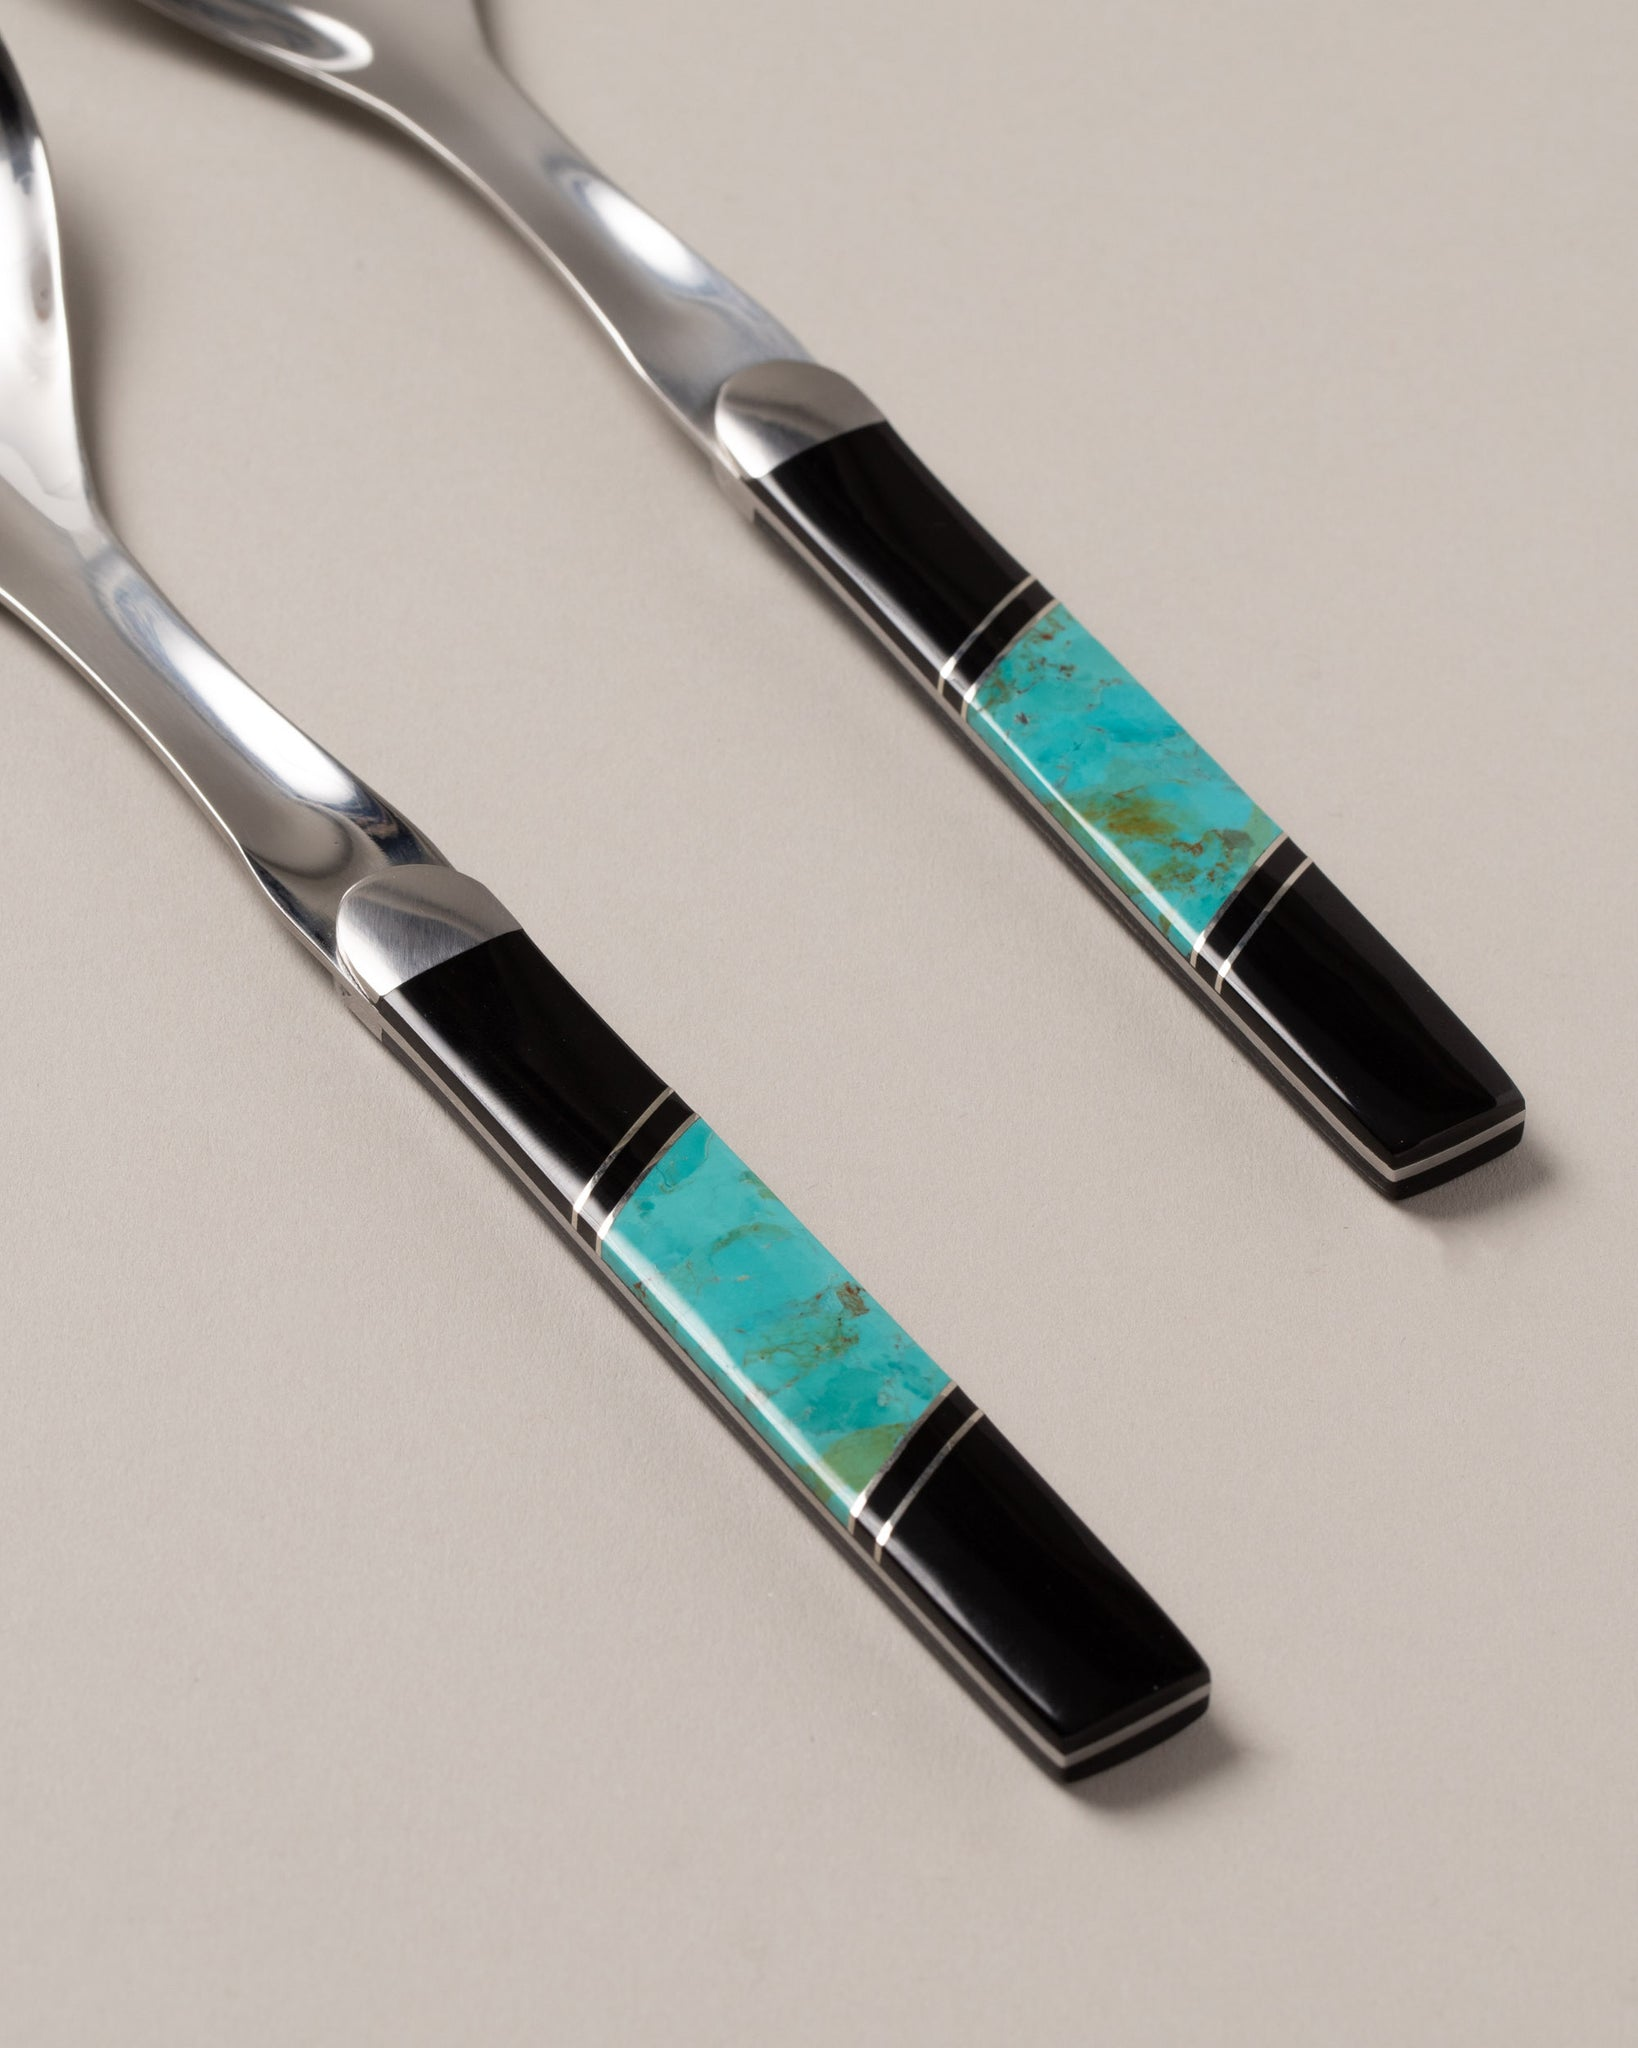 Santa Fe Stoneworks Salad Serving Set turquoise